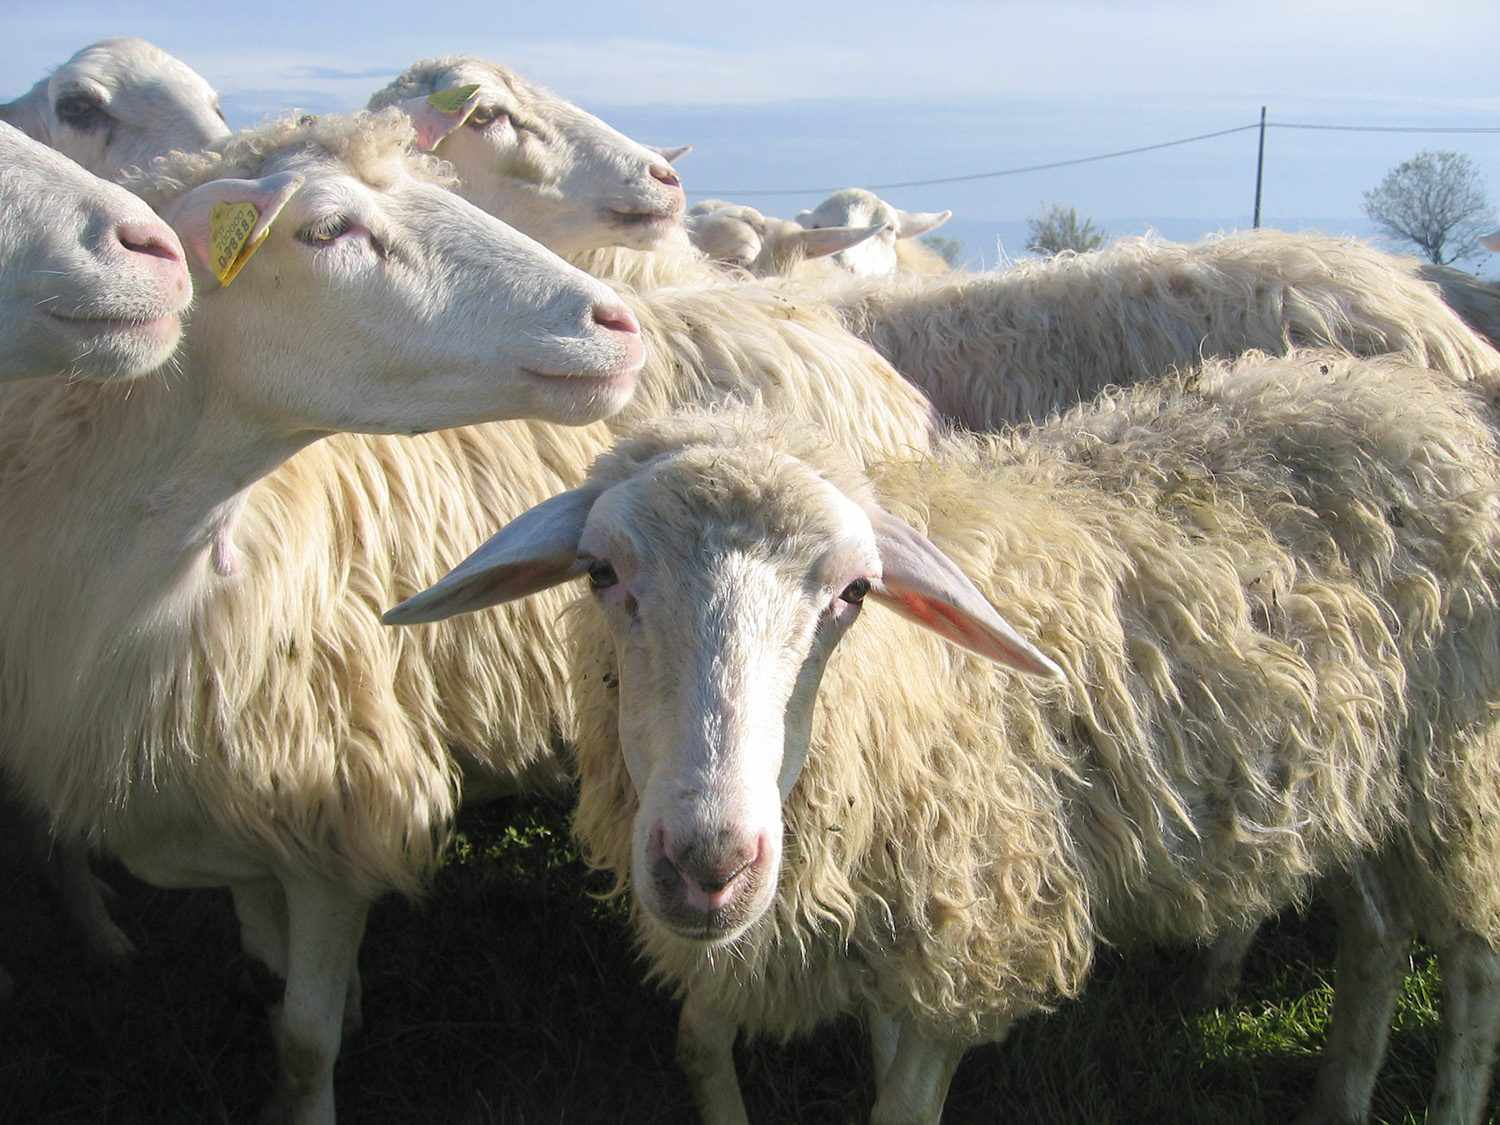 Close-up of sheep used for producing milk for cheesemaking, in Italy